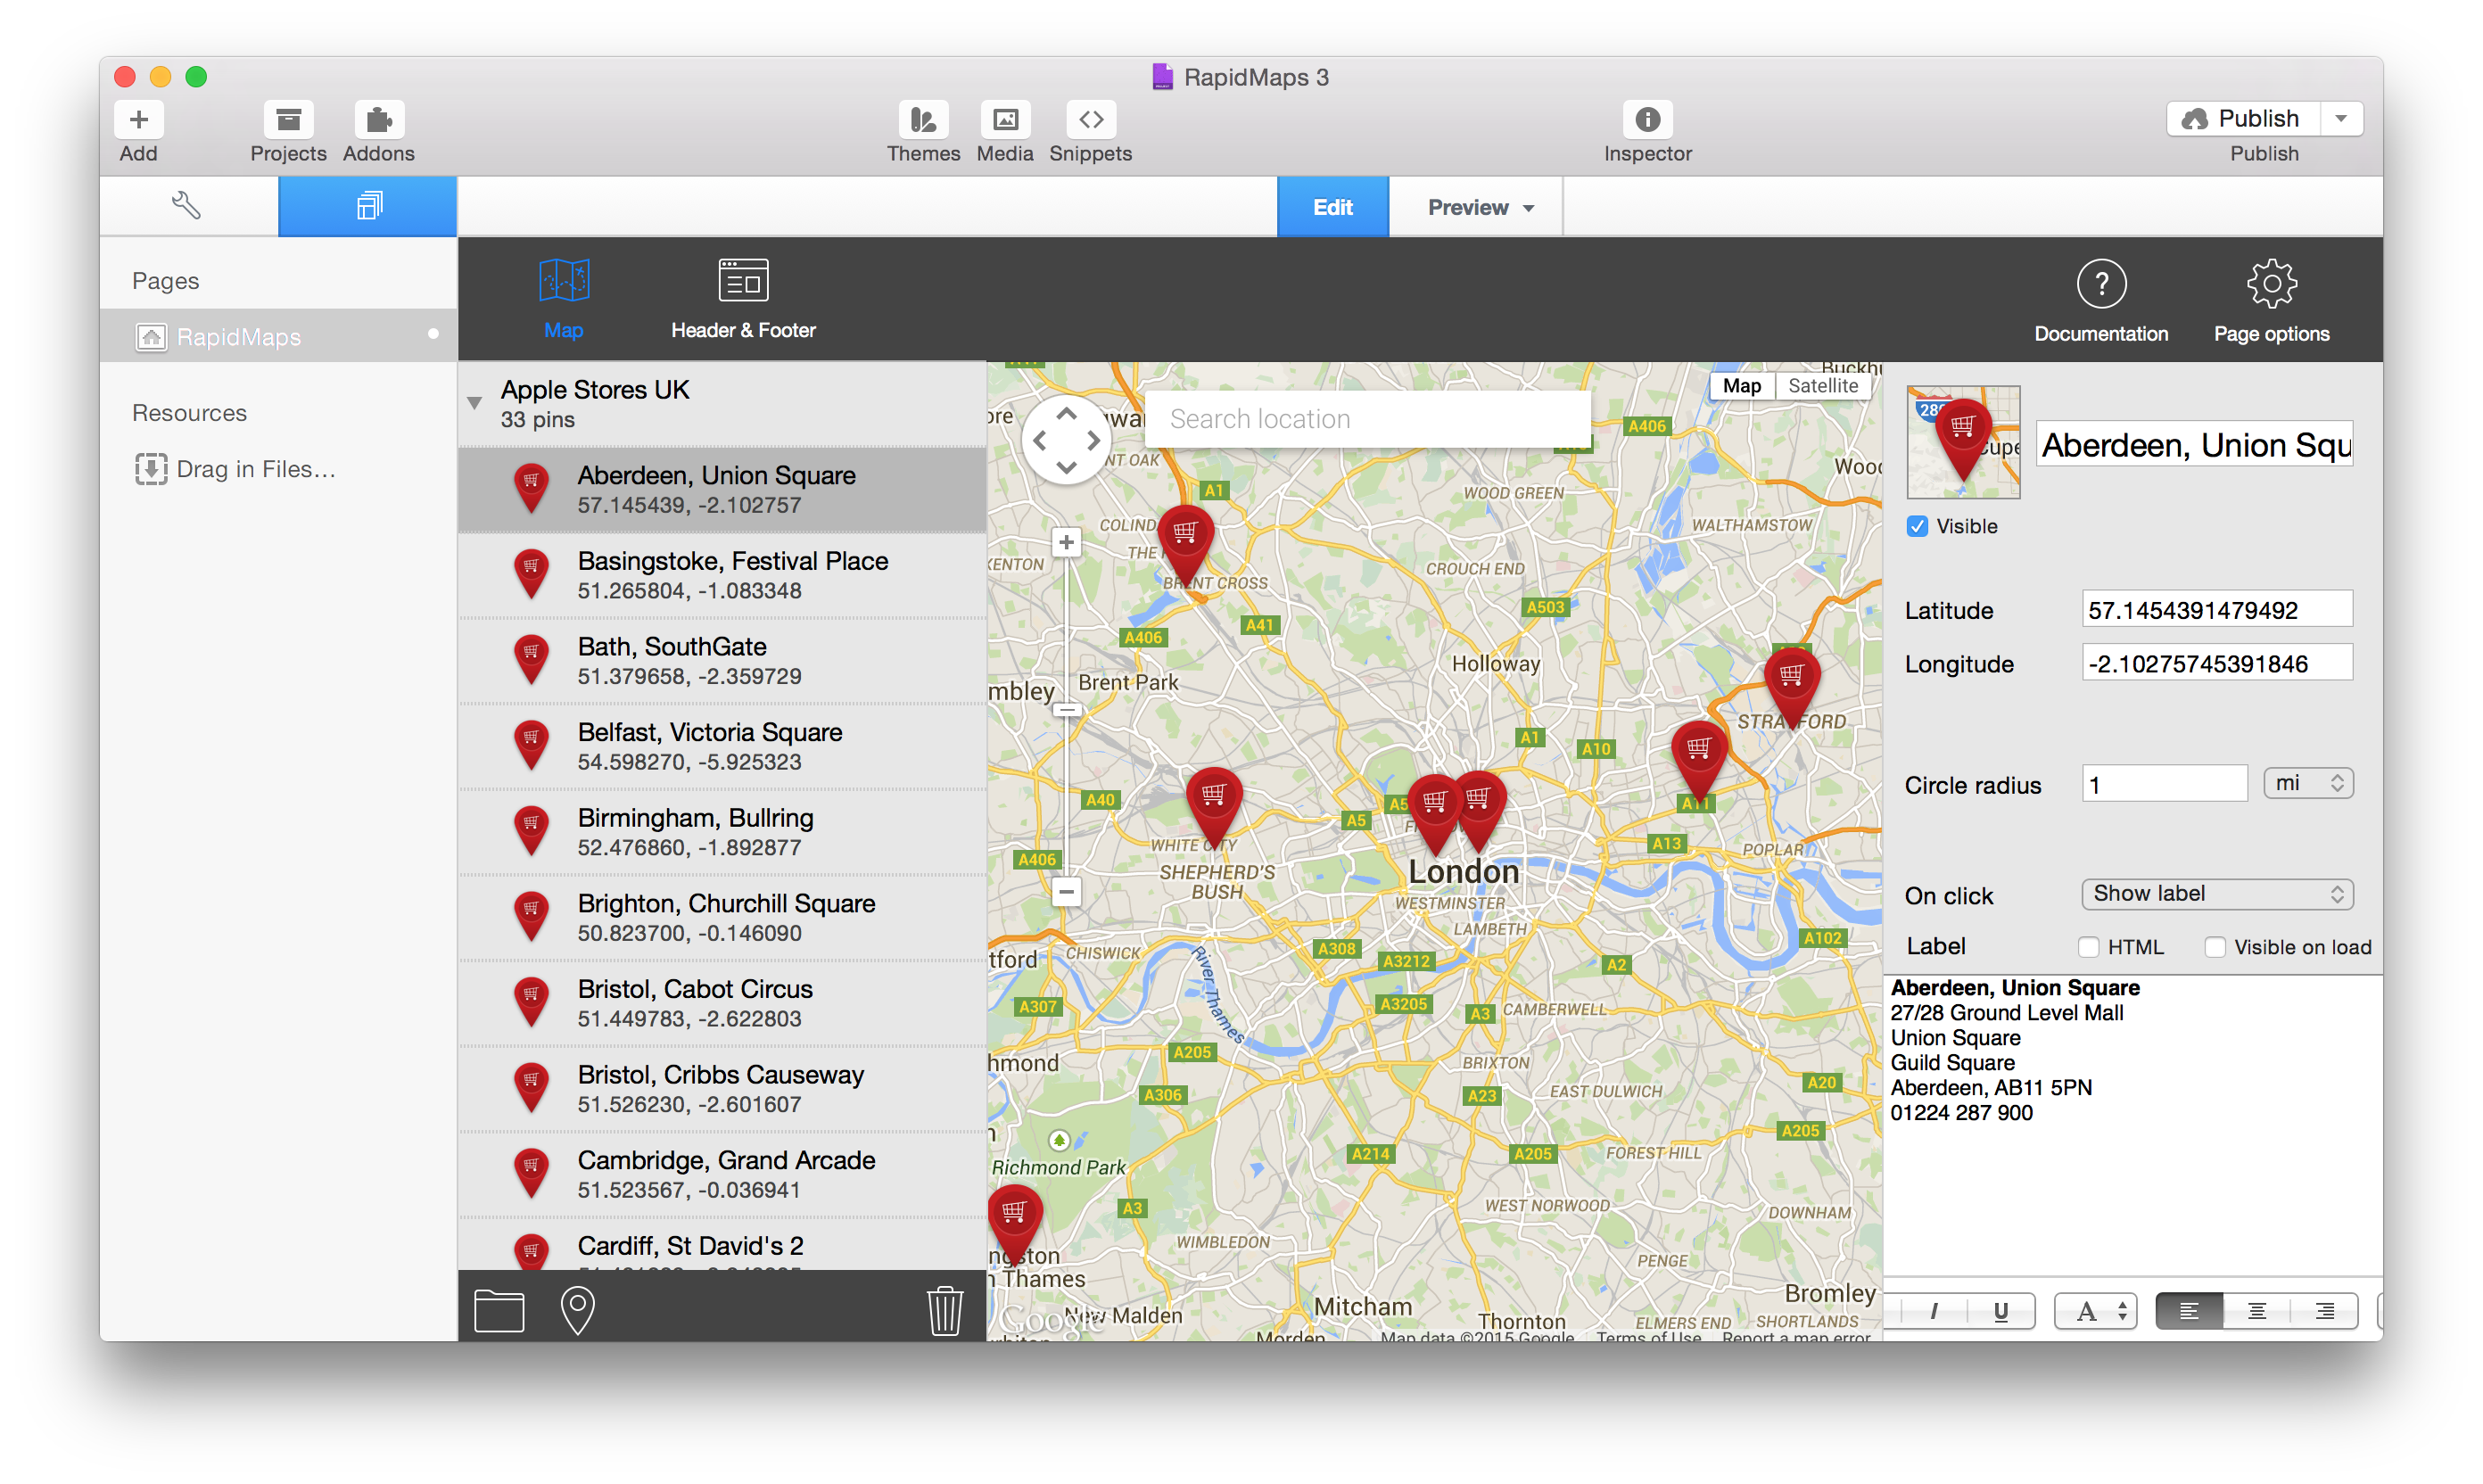 RapidMaps 3 Project - Apple Stores in UK